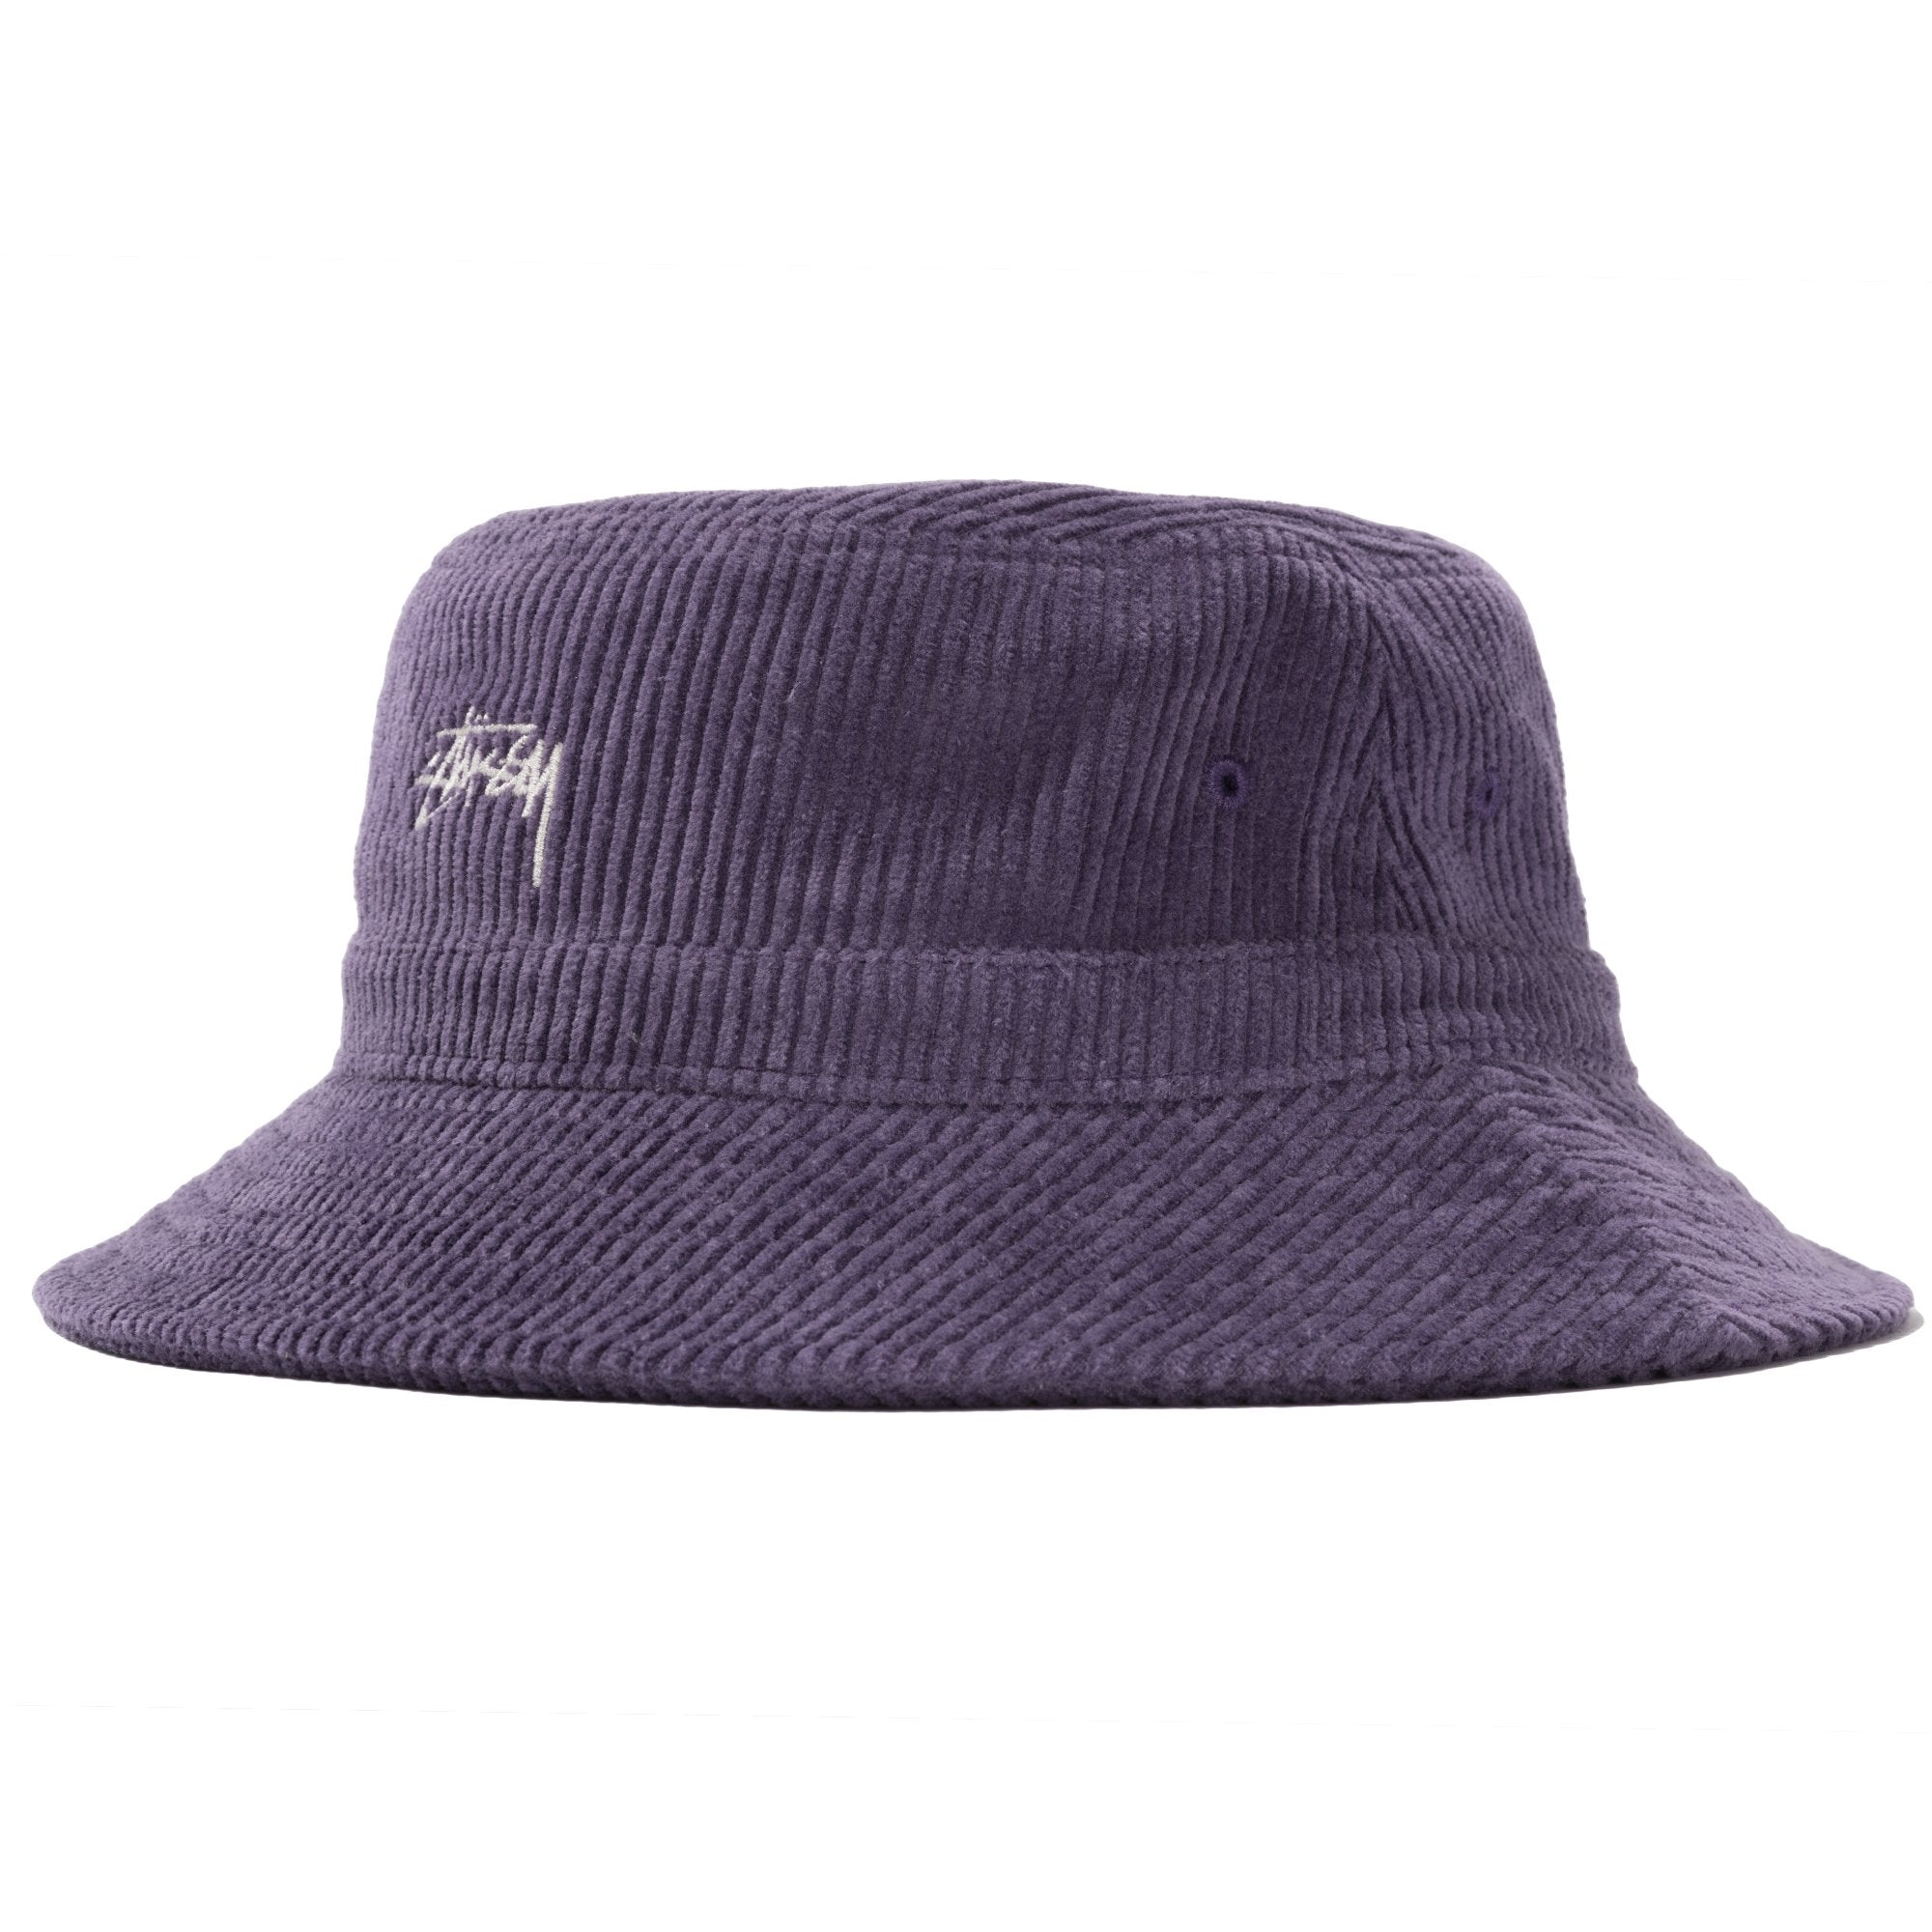 Stussy Hats, Bucket Hats, Caps and Beanies for Men and Women